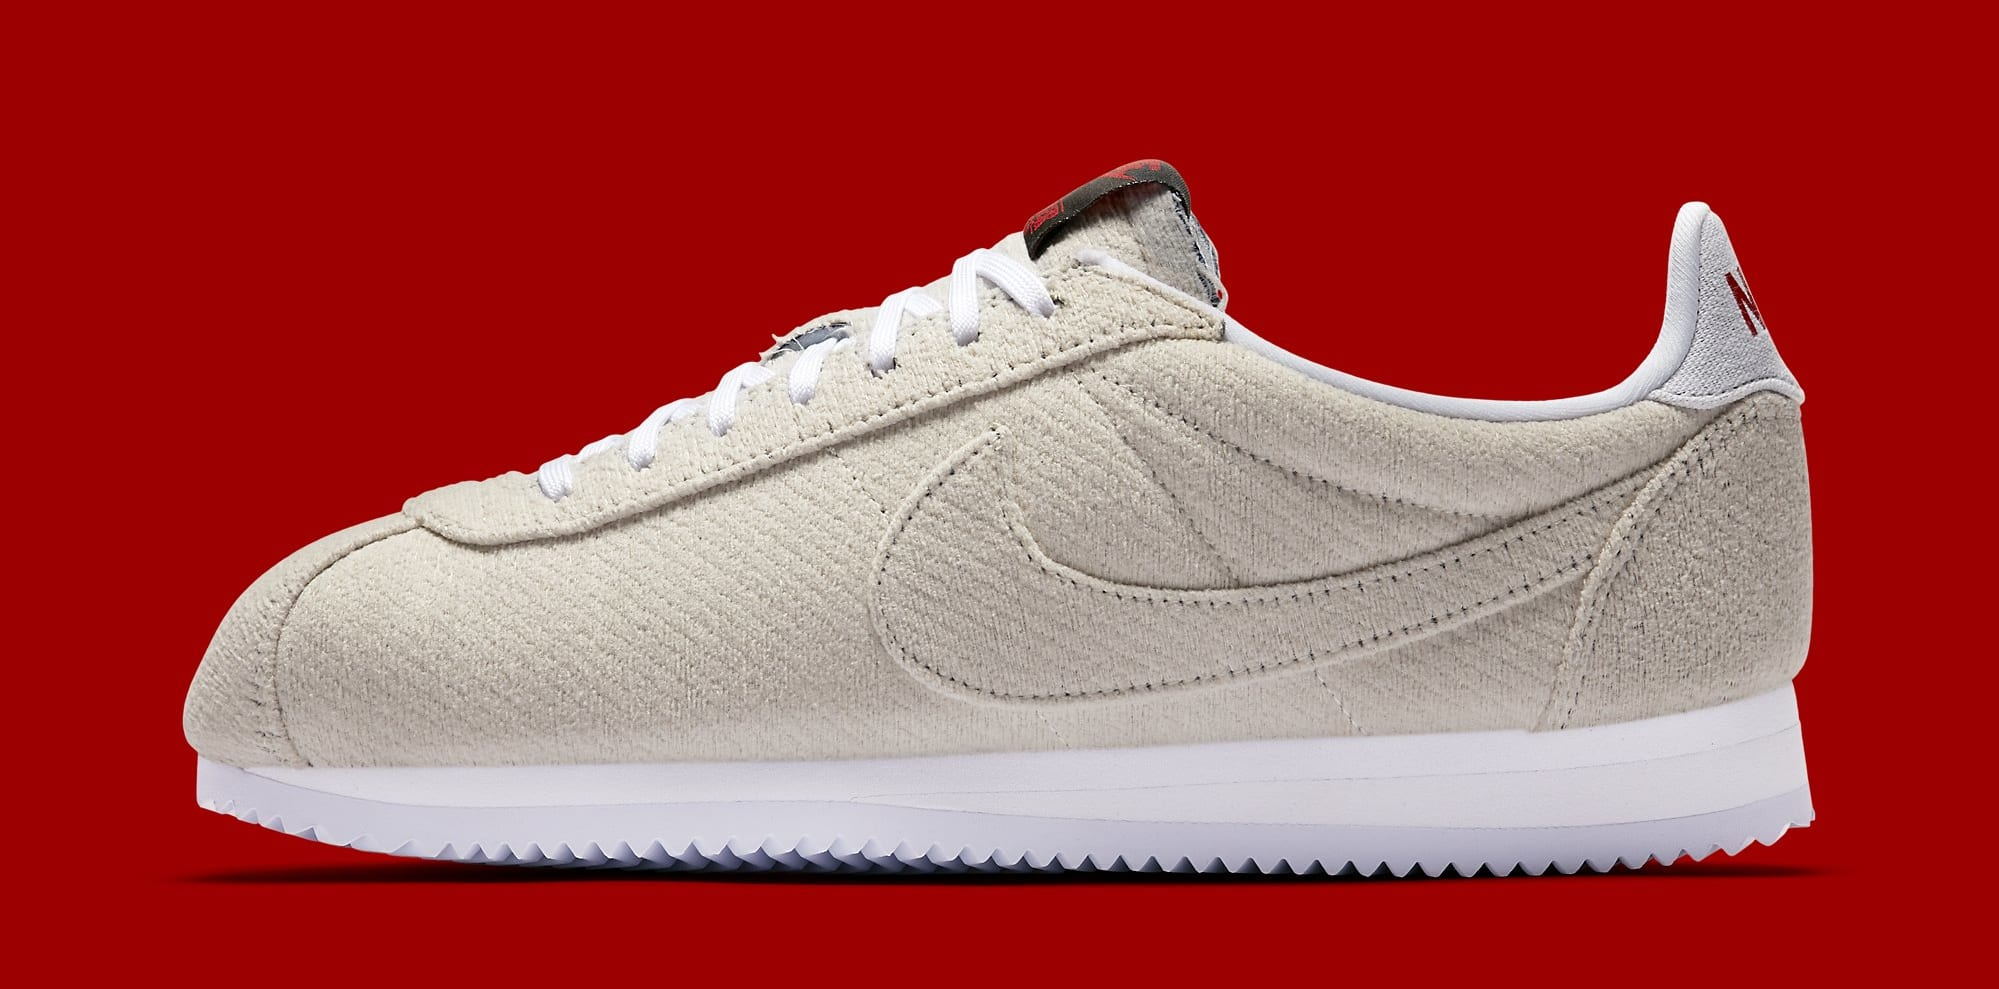 Stranger Things x Nike Cortez 'Starcourt Mall' CJ6107-100 (Lateral)